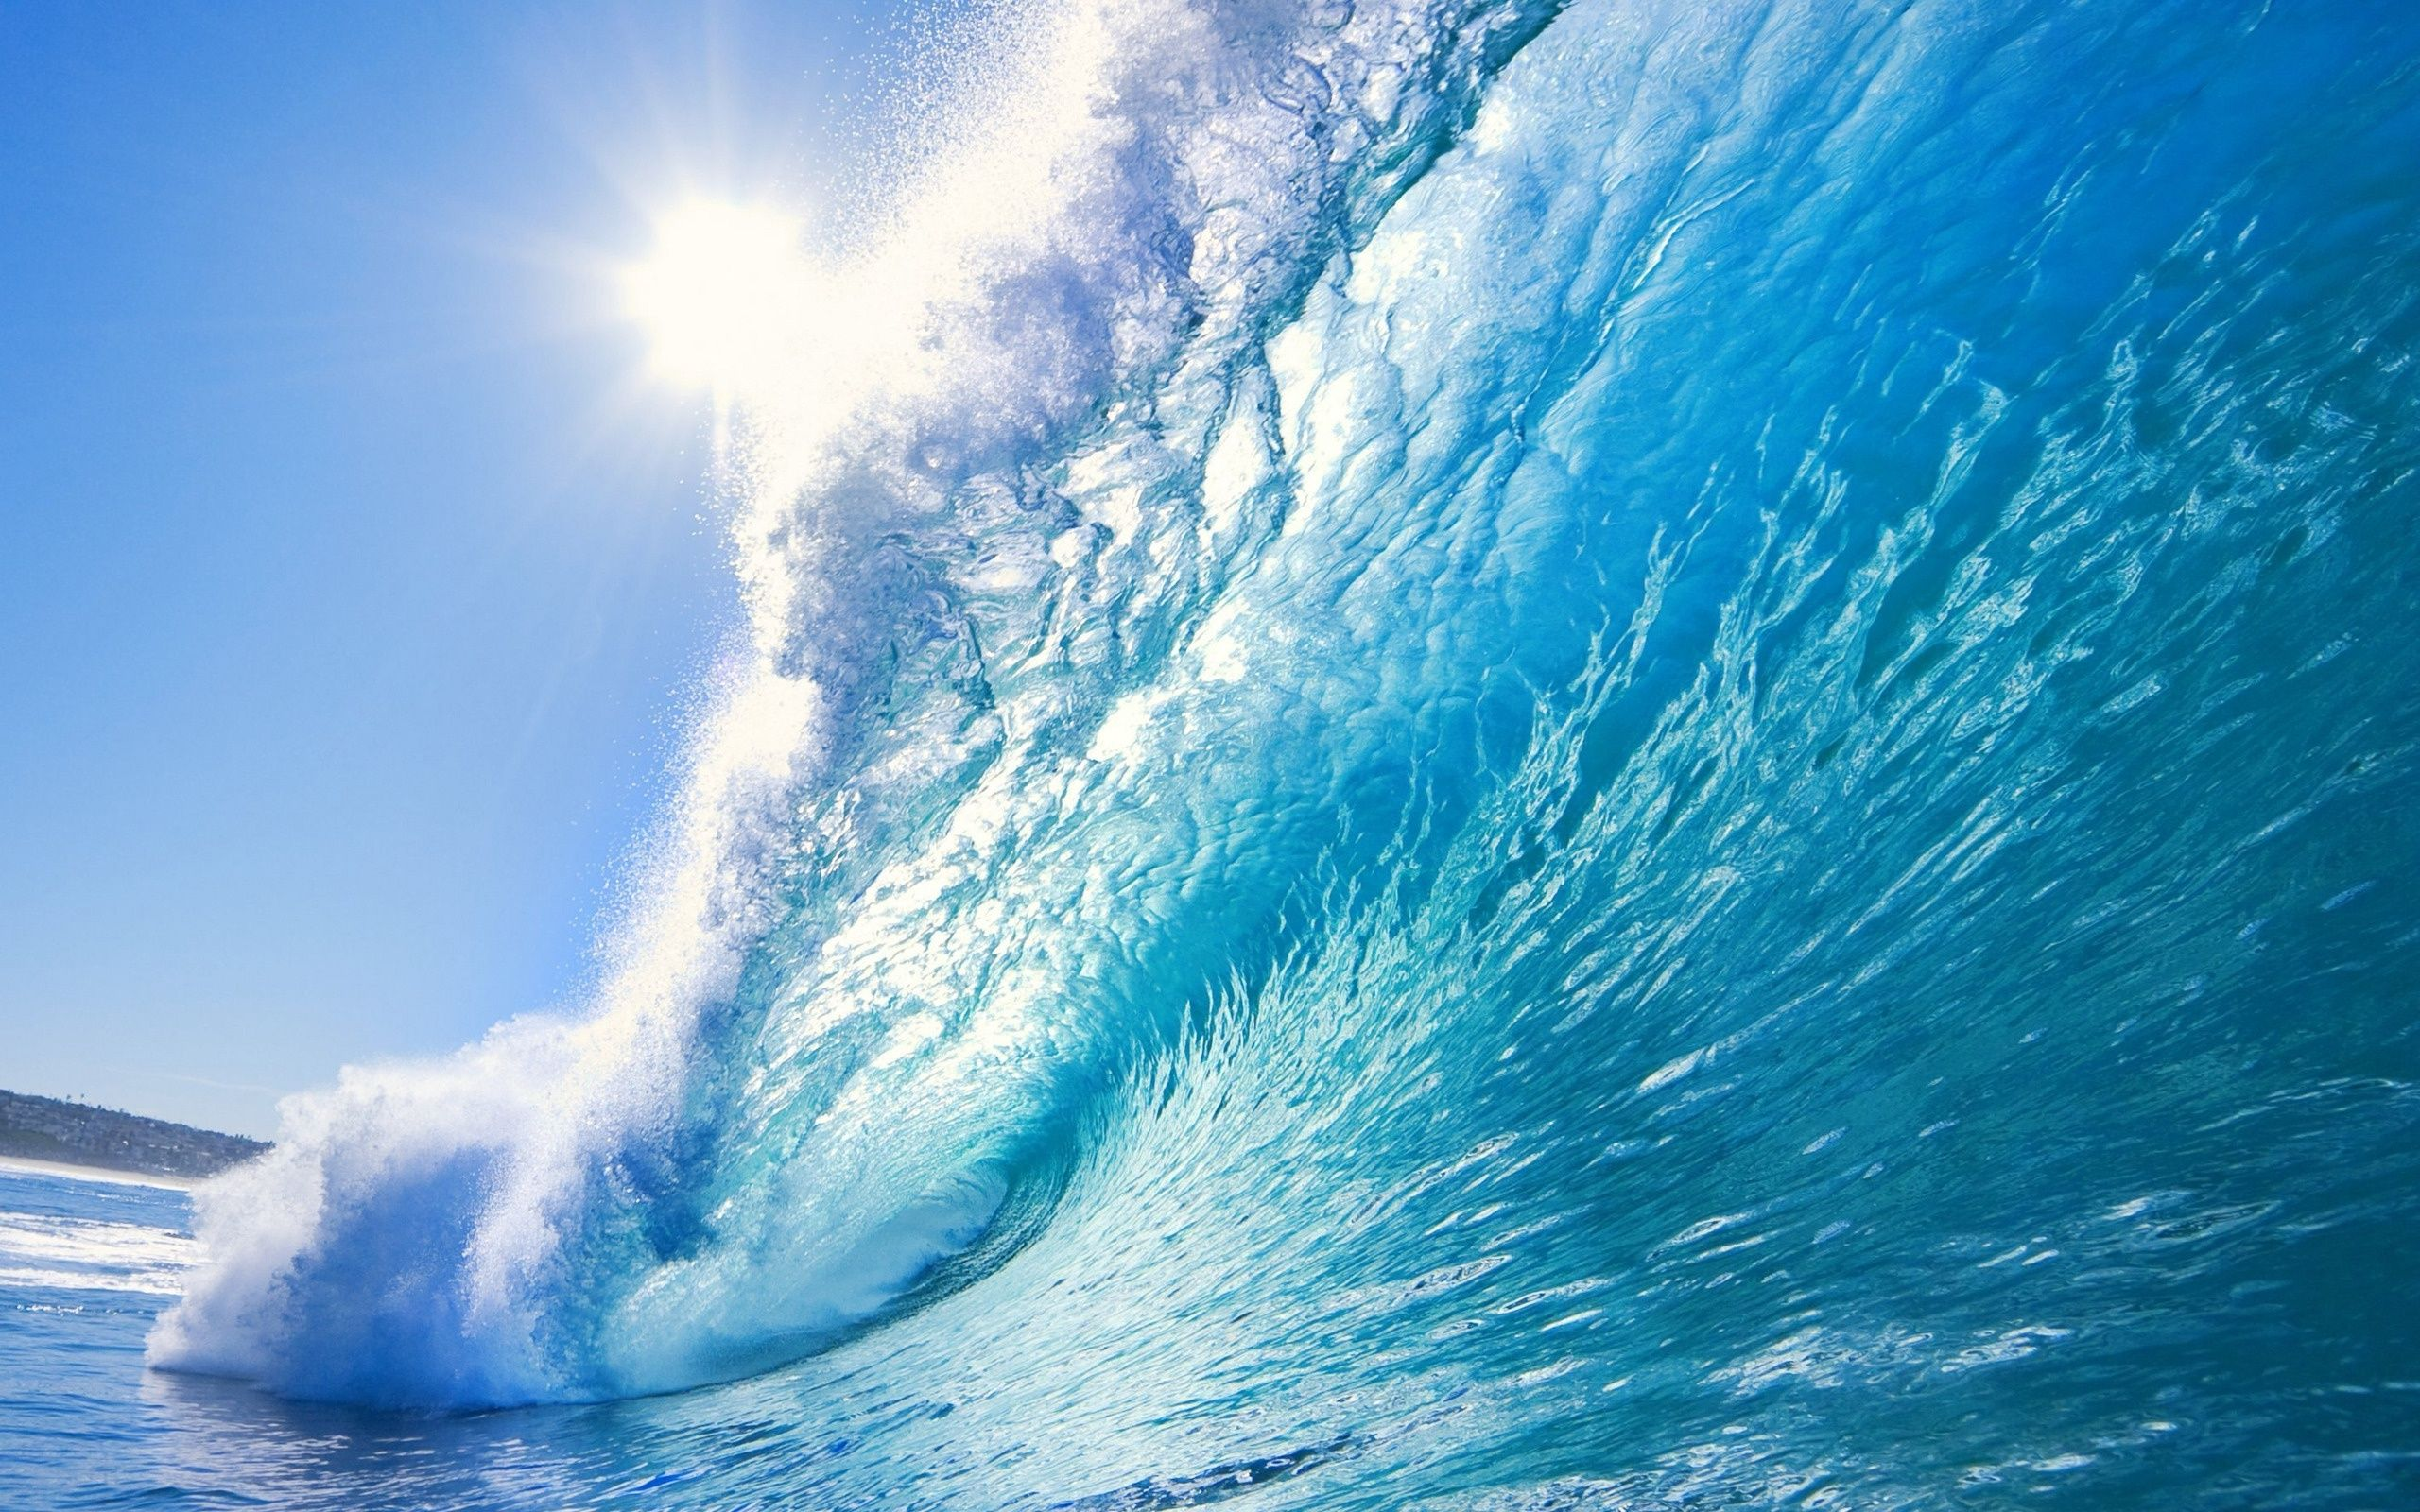 Ocean Waves hd Wallpapers lovely hd desktop background wallpapers of 2560x1600